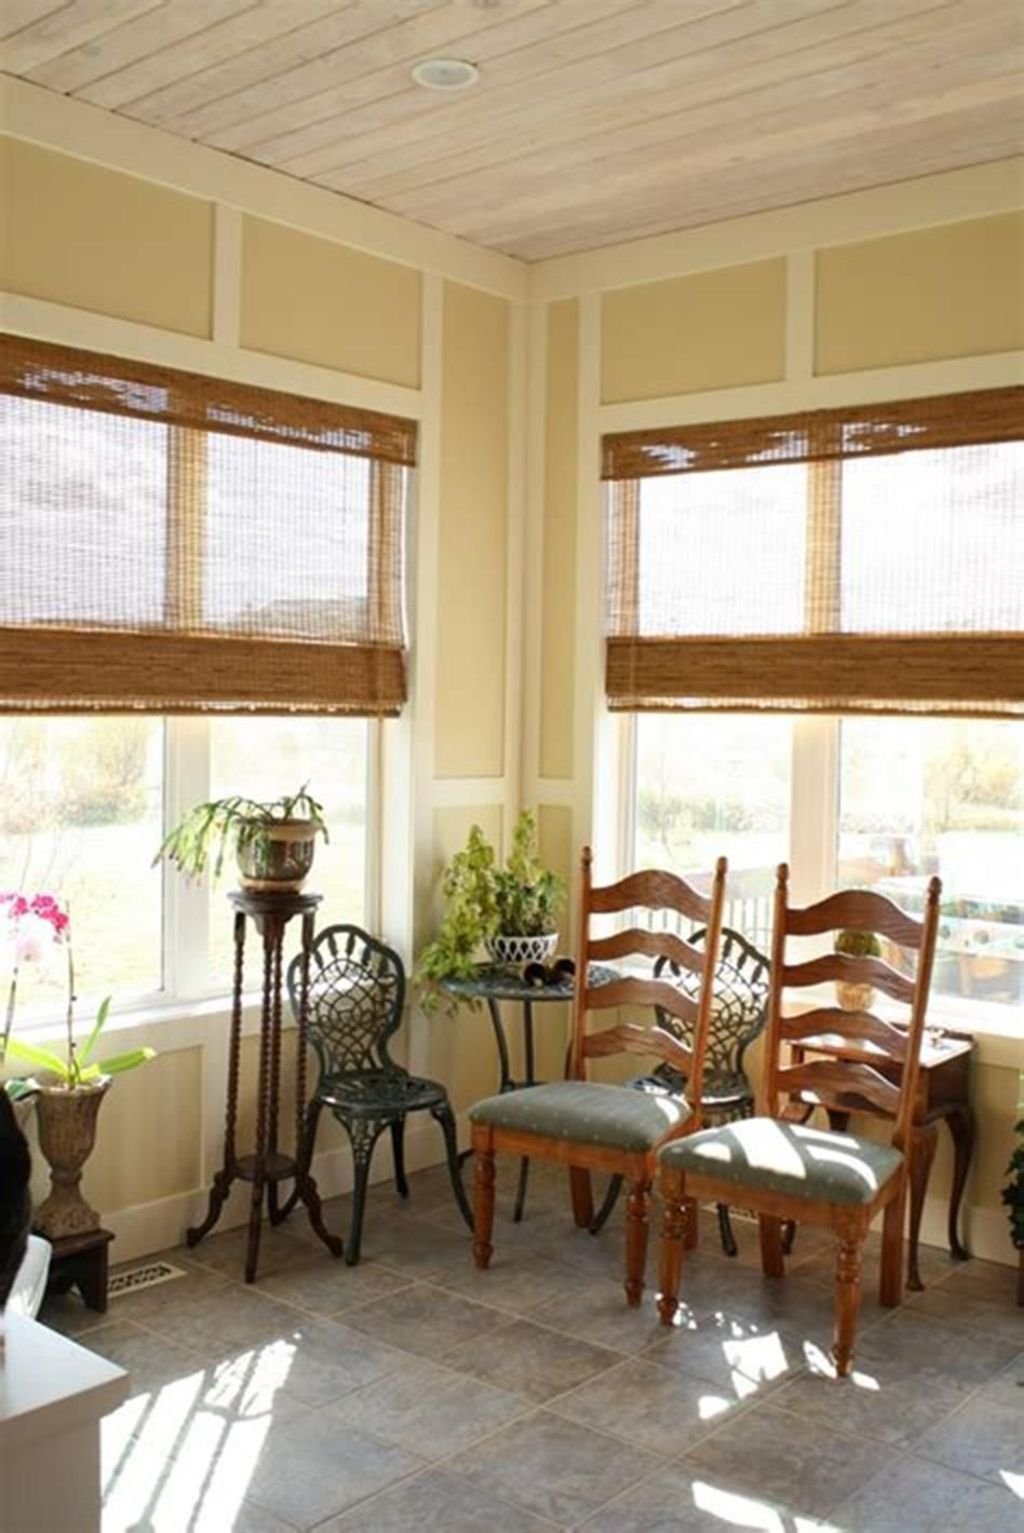 Most Popular Affordable Sunroom Design Ideas for 2019 Part 12